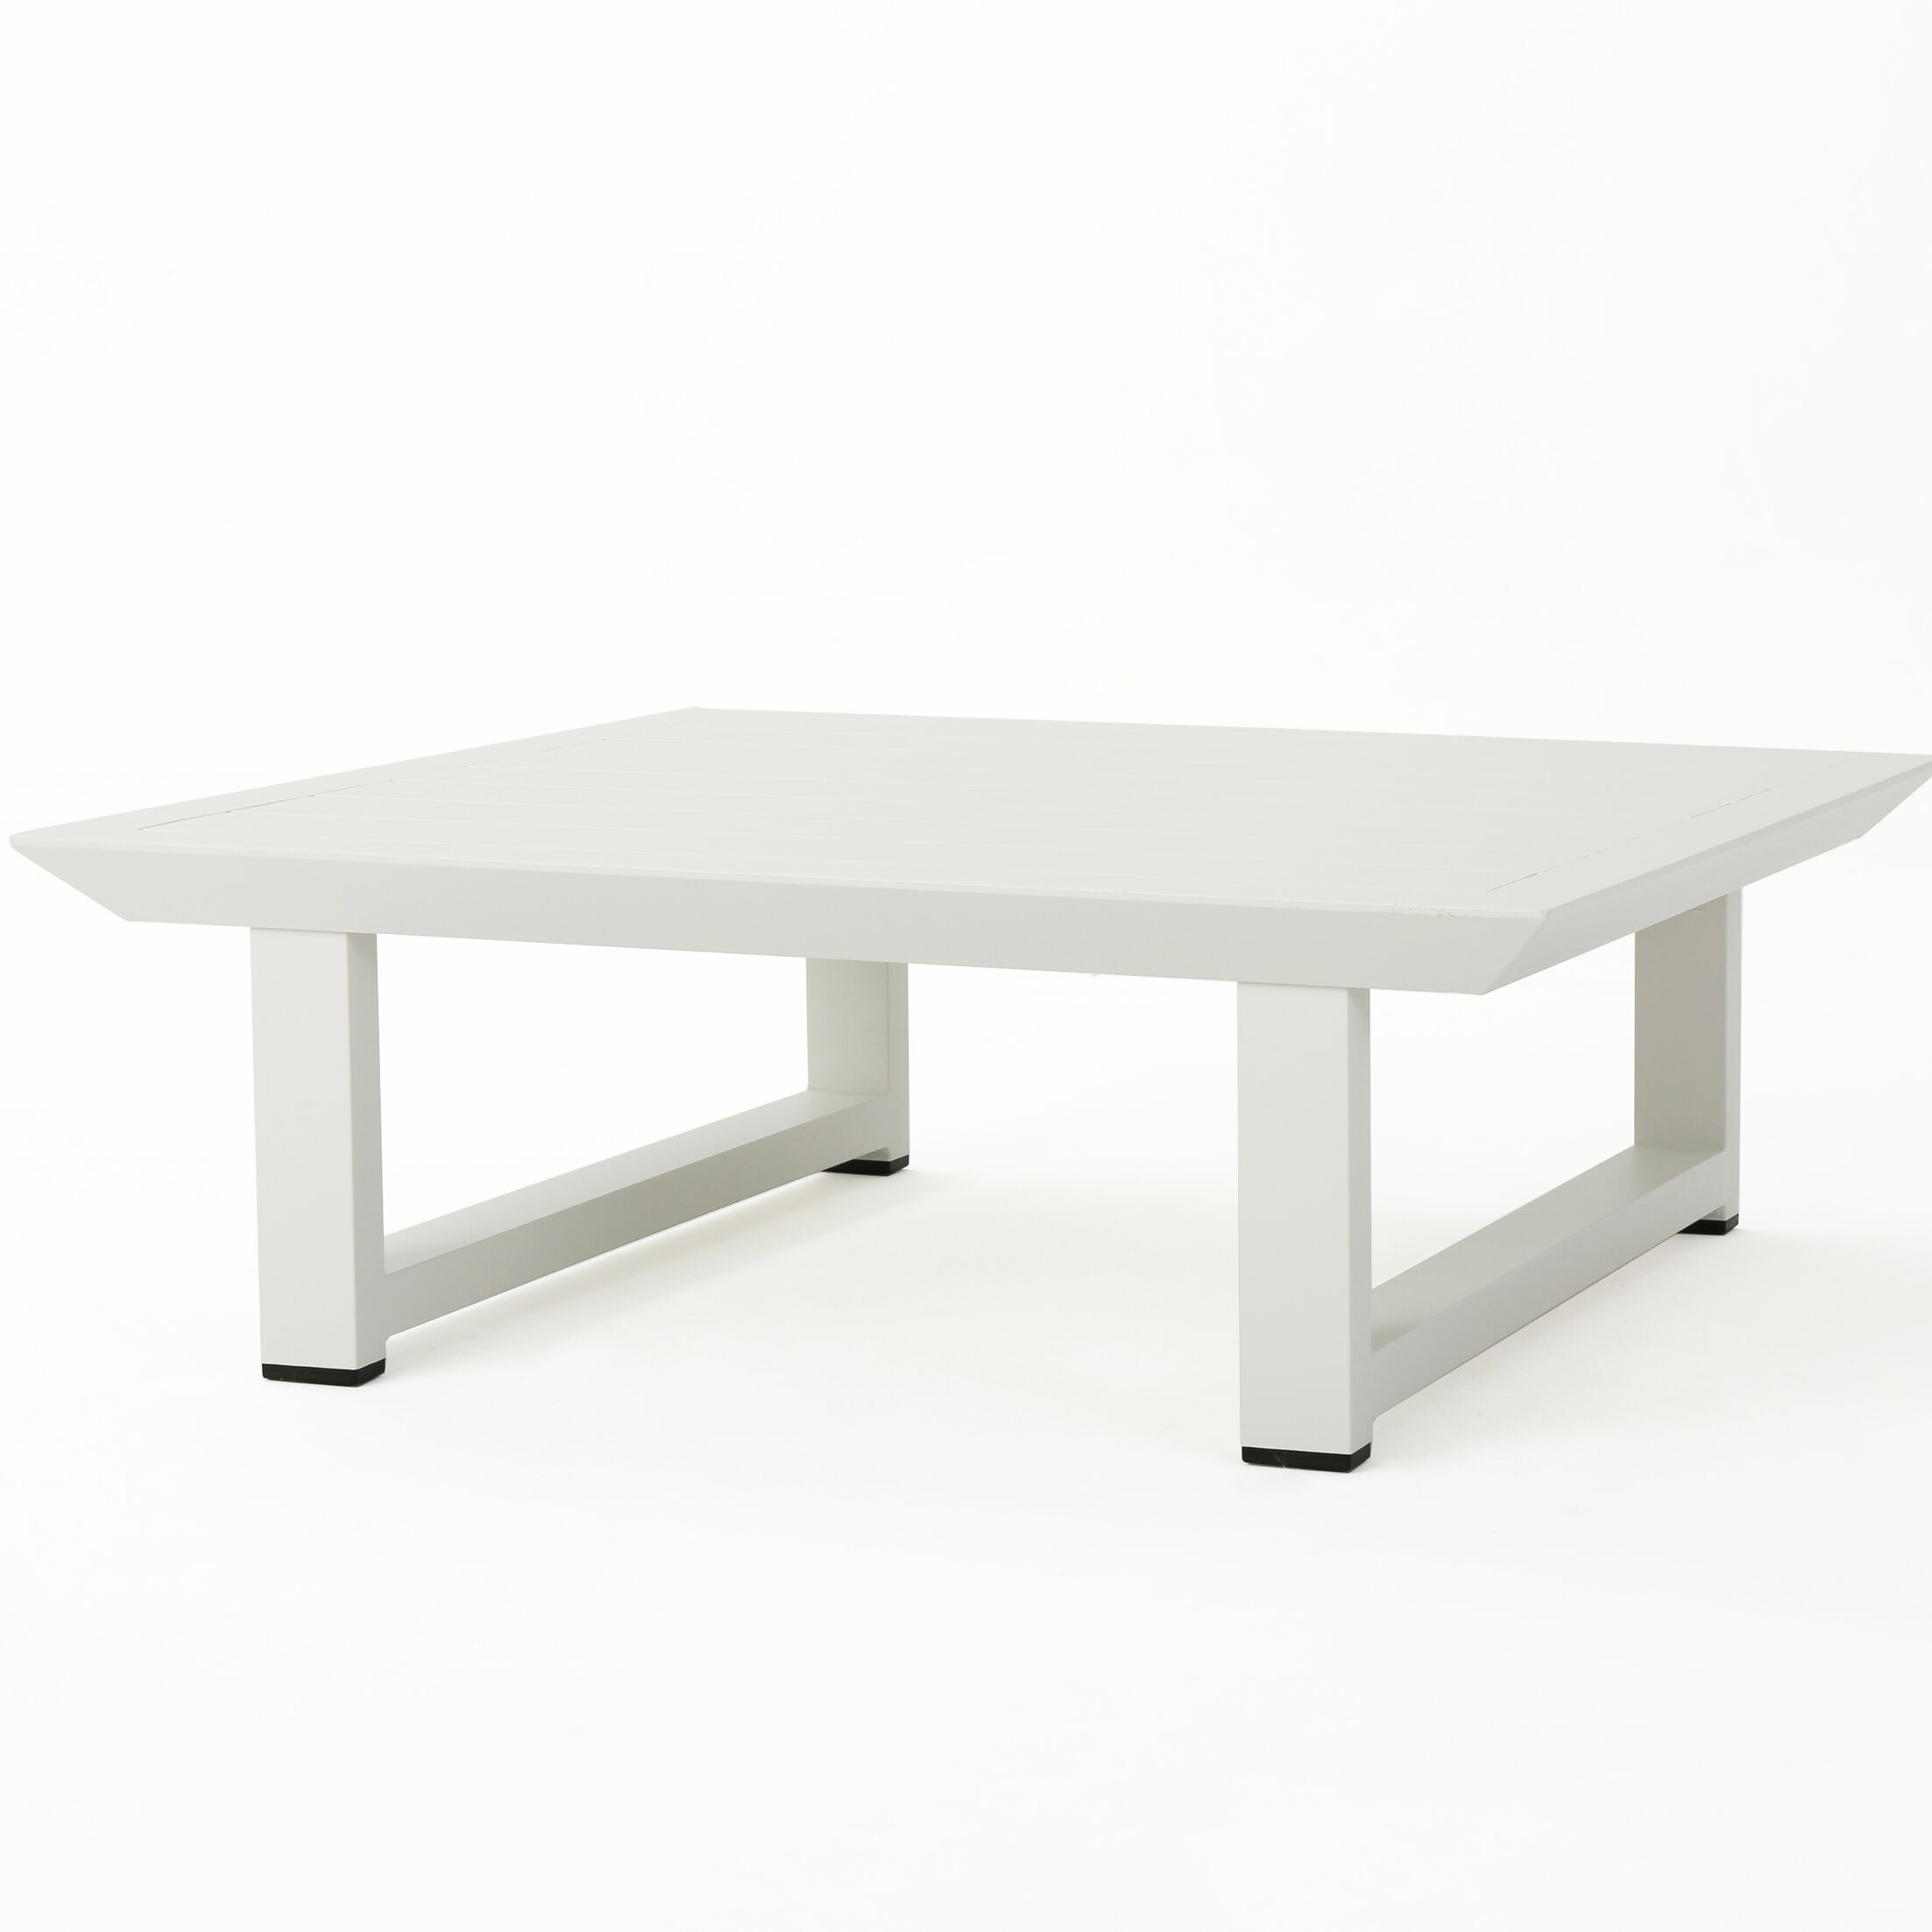 Fricks Rust-Proof Aluminum Coffee Table Color: White